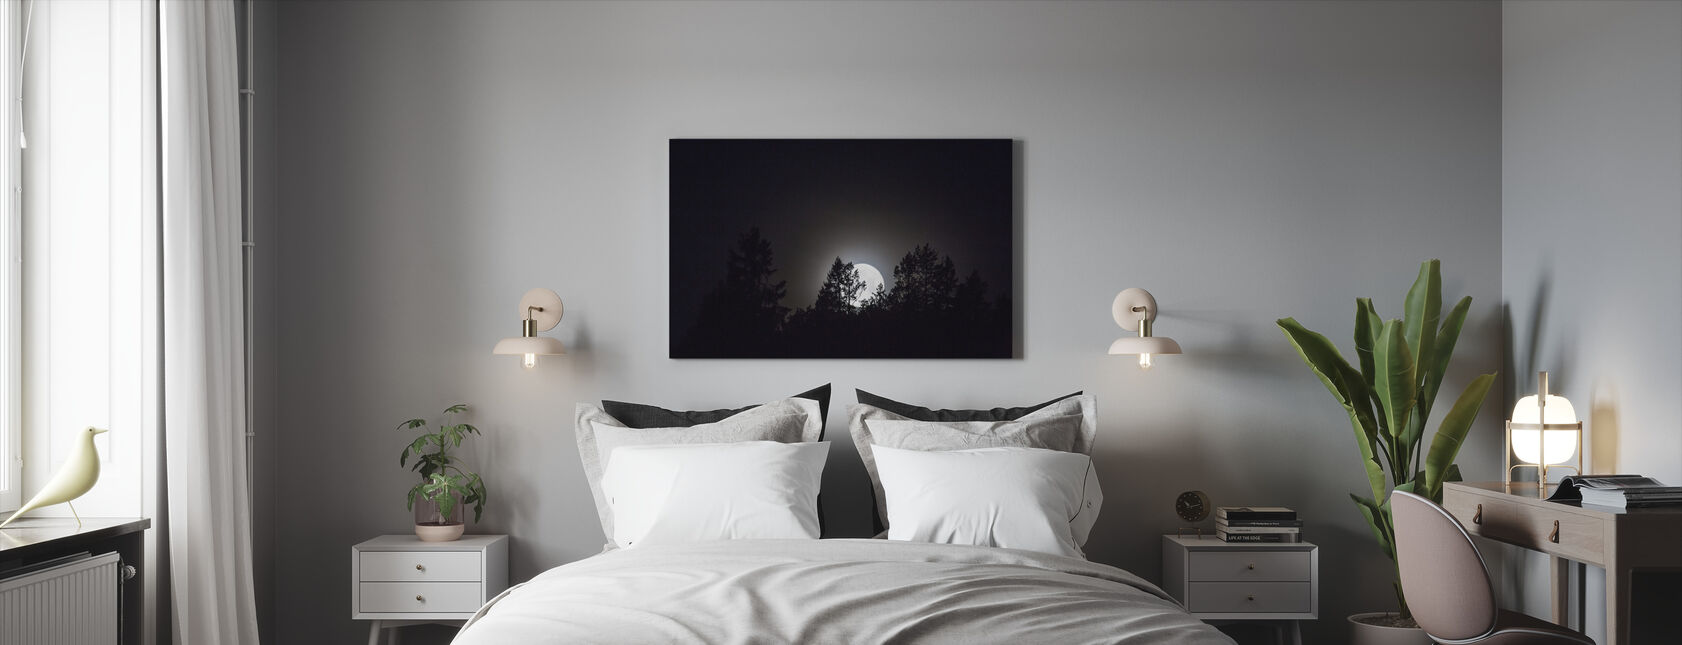 Moonlight over Medelpad, Sweden, Europe - Canvas print - Bedroom